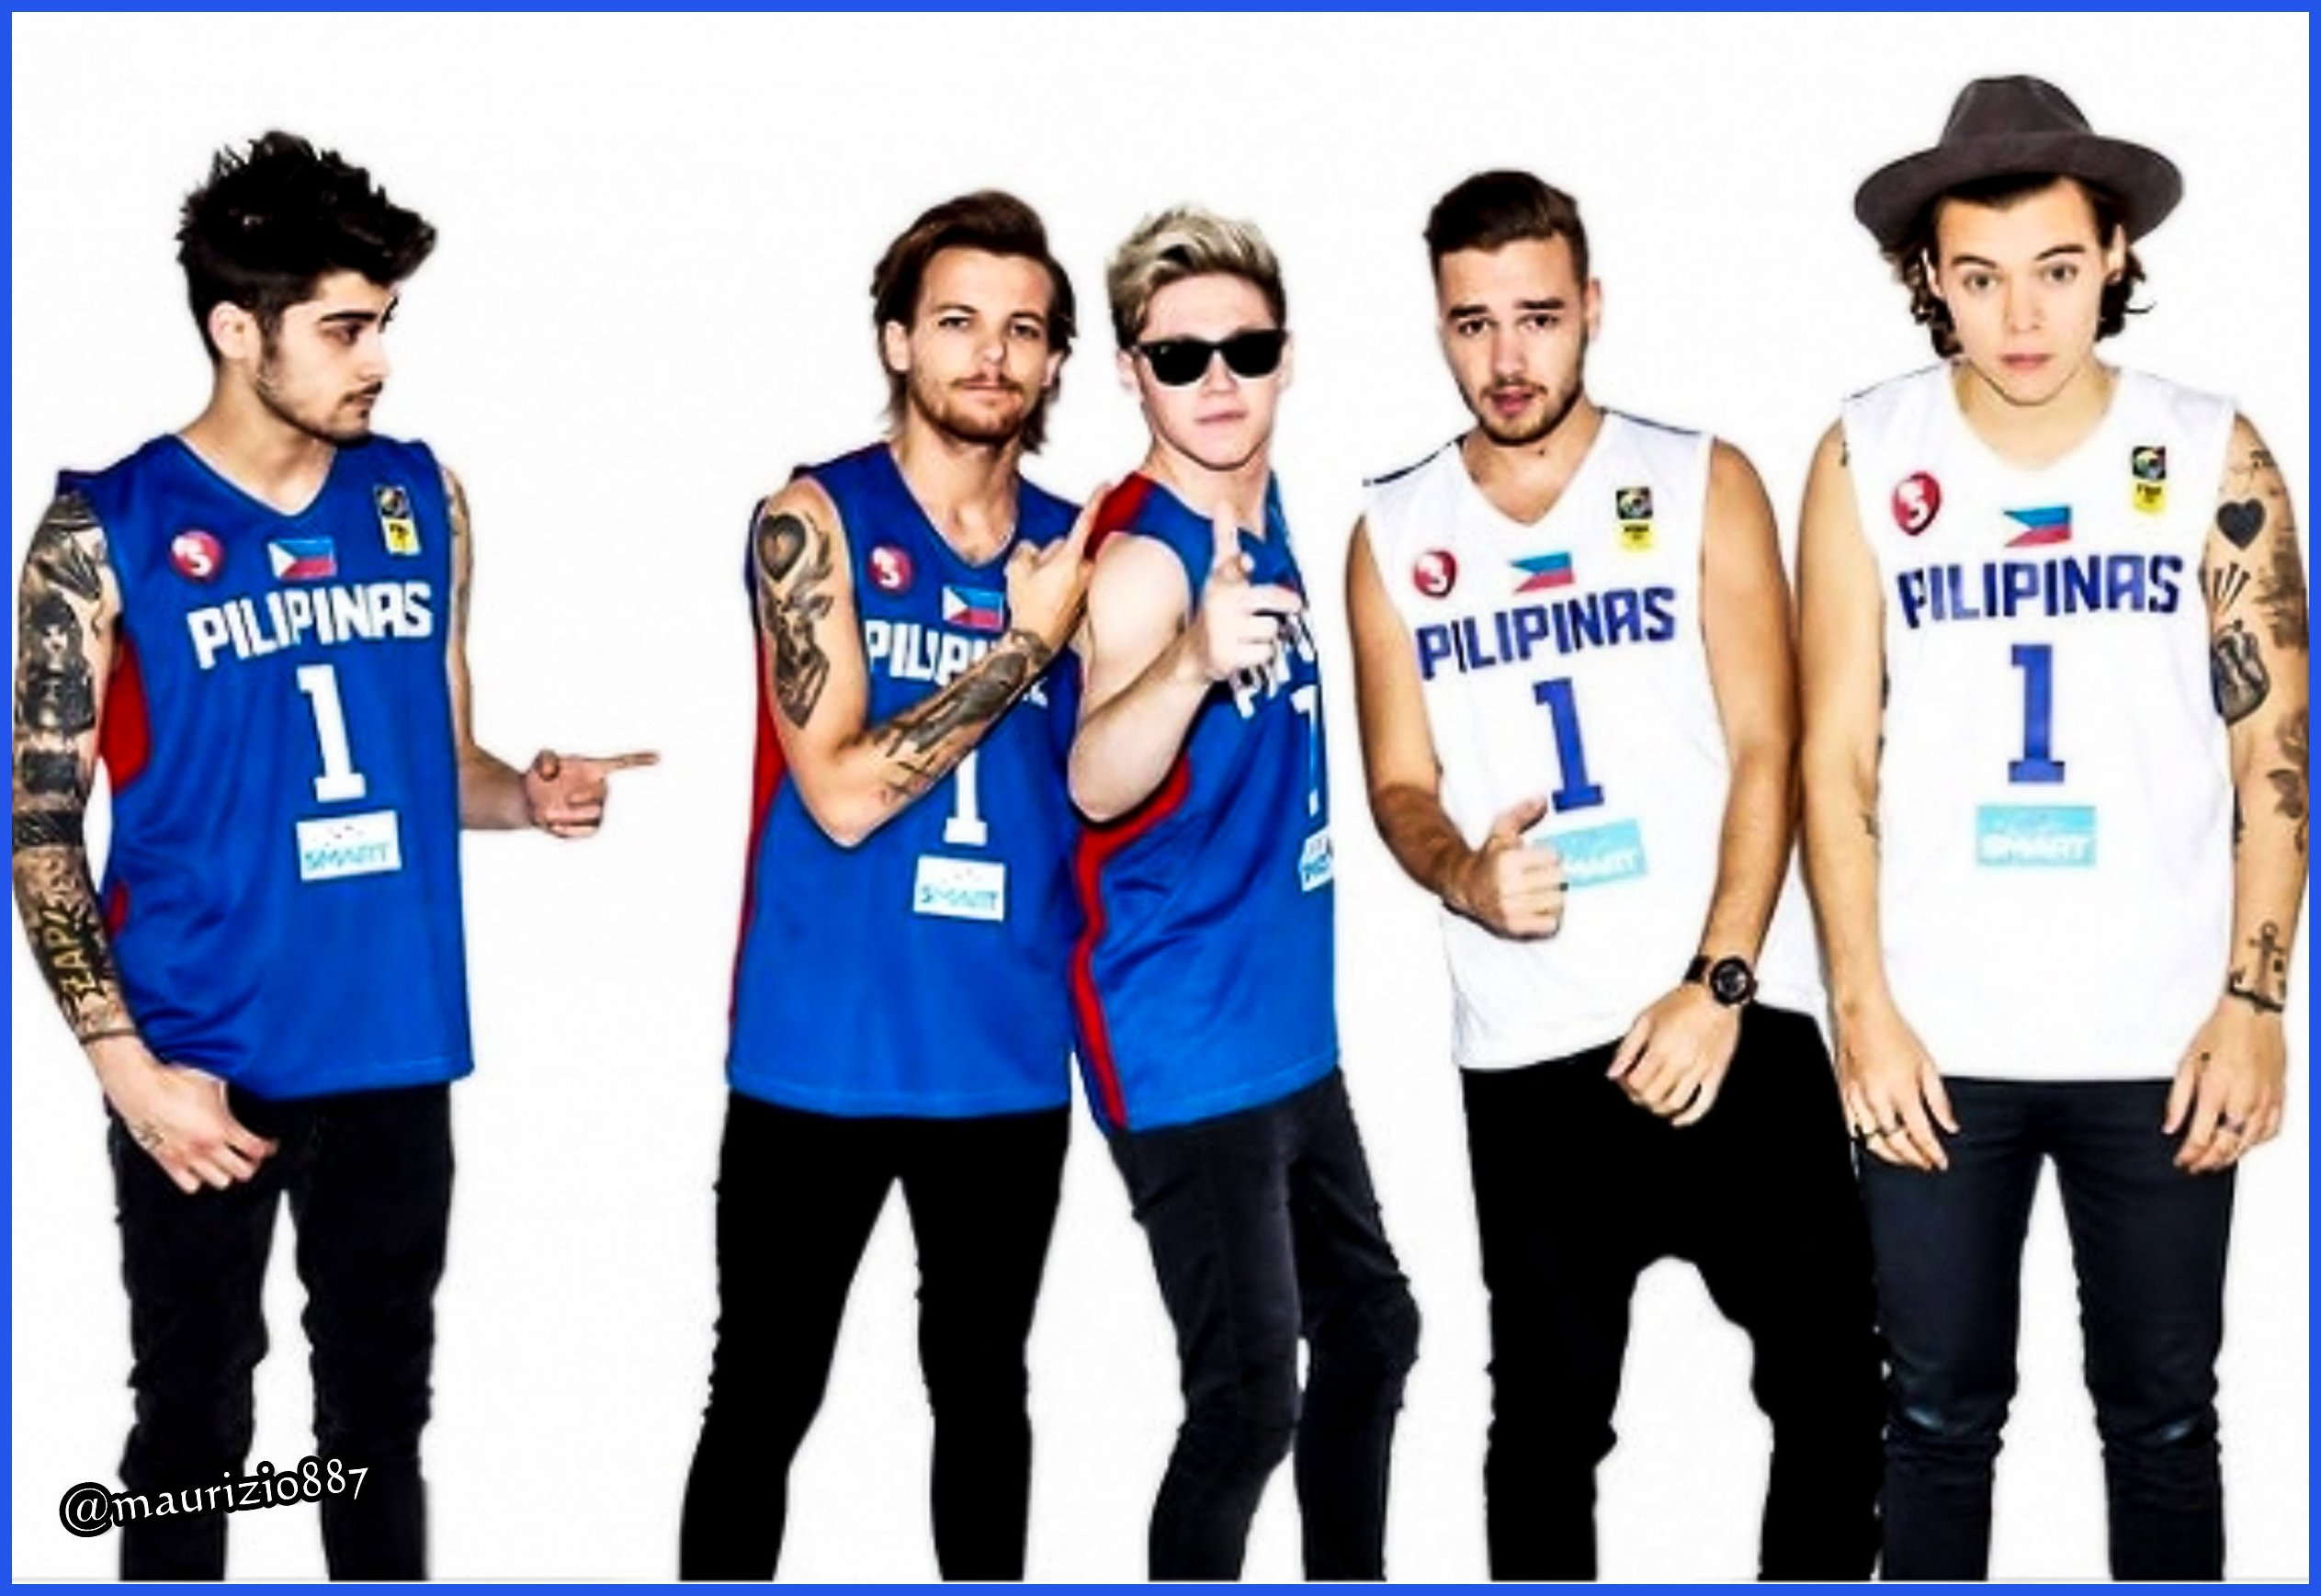 one-direction-photoshoot-2014-one-direction-37098125-2526-1737 jpgOne Direction Photoshoot 2014